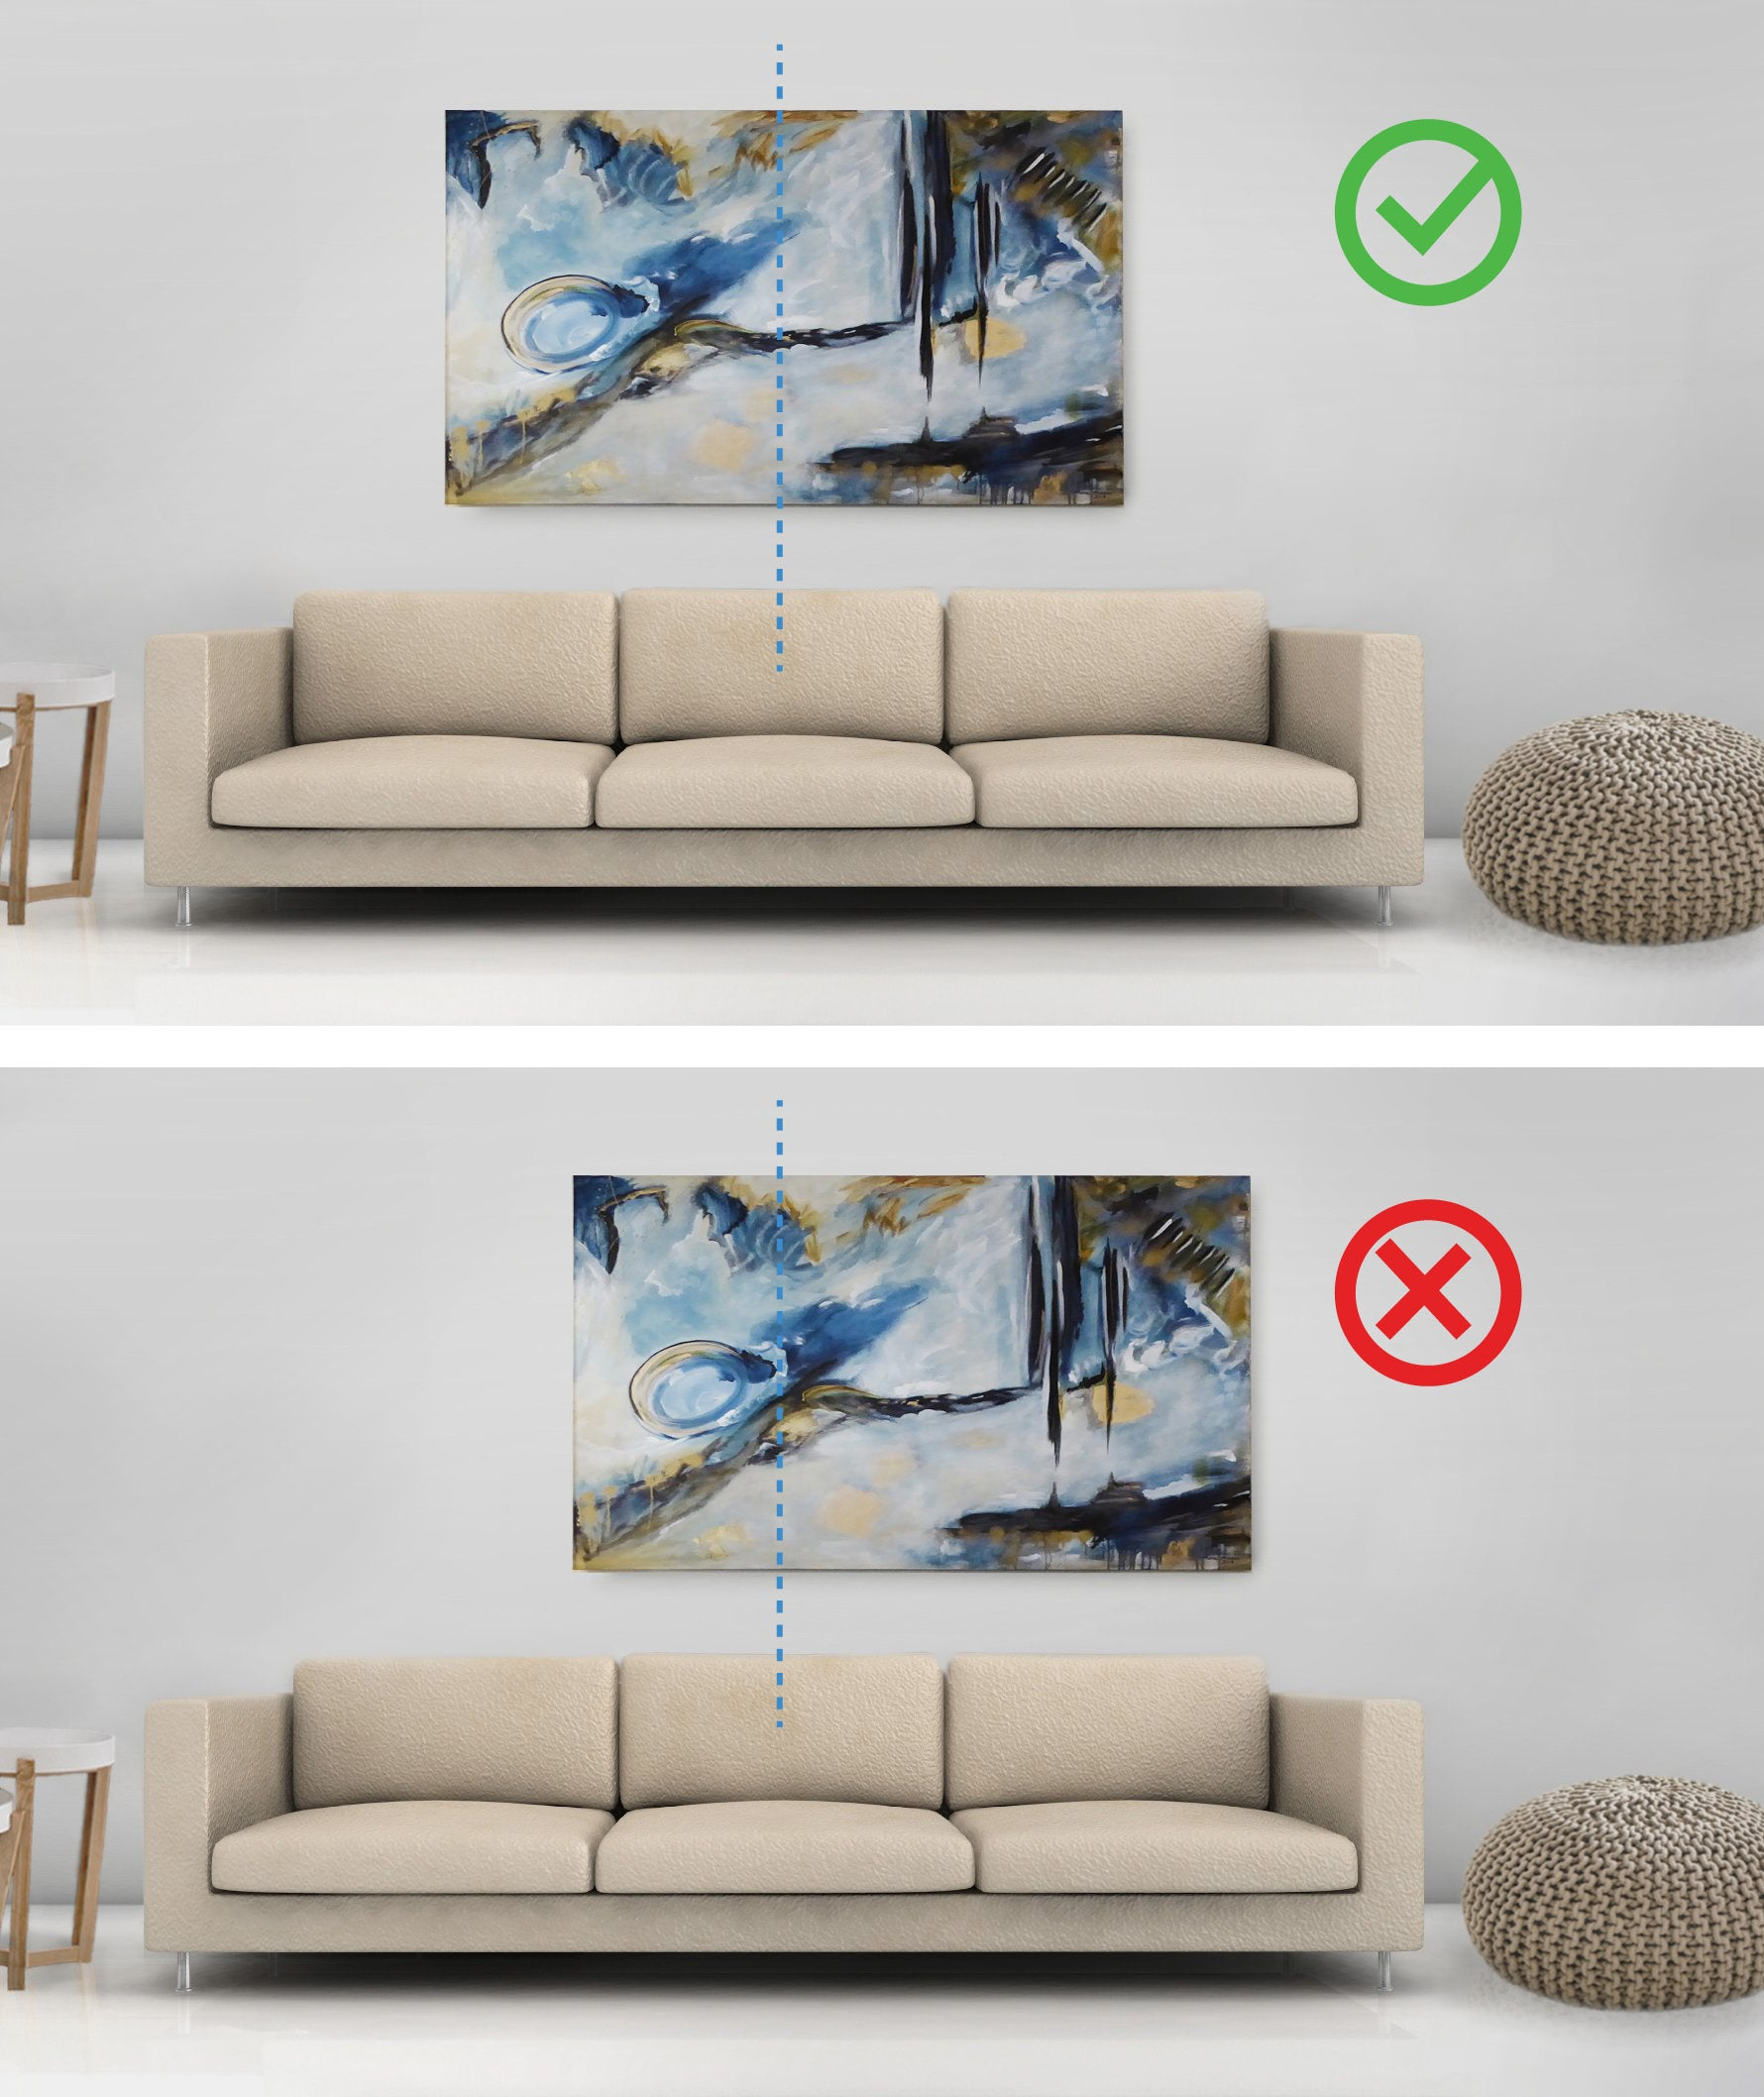 Aligning artwork with furniture or the wall